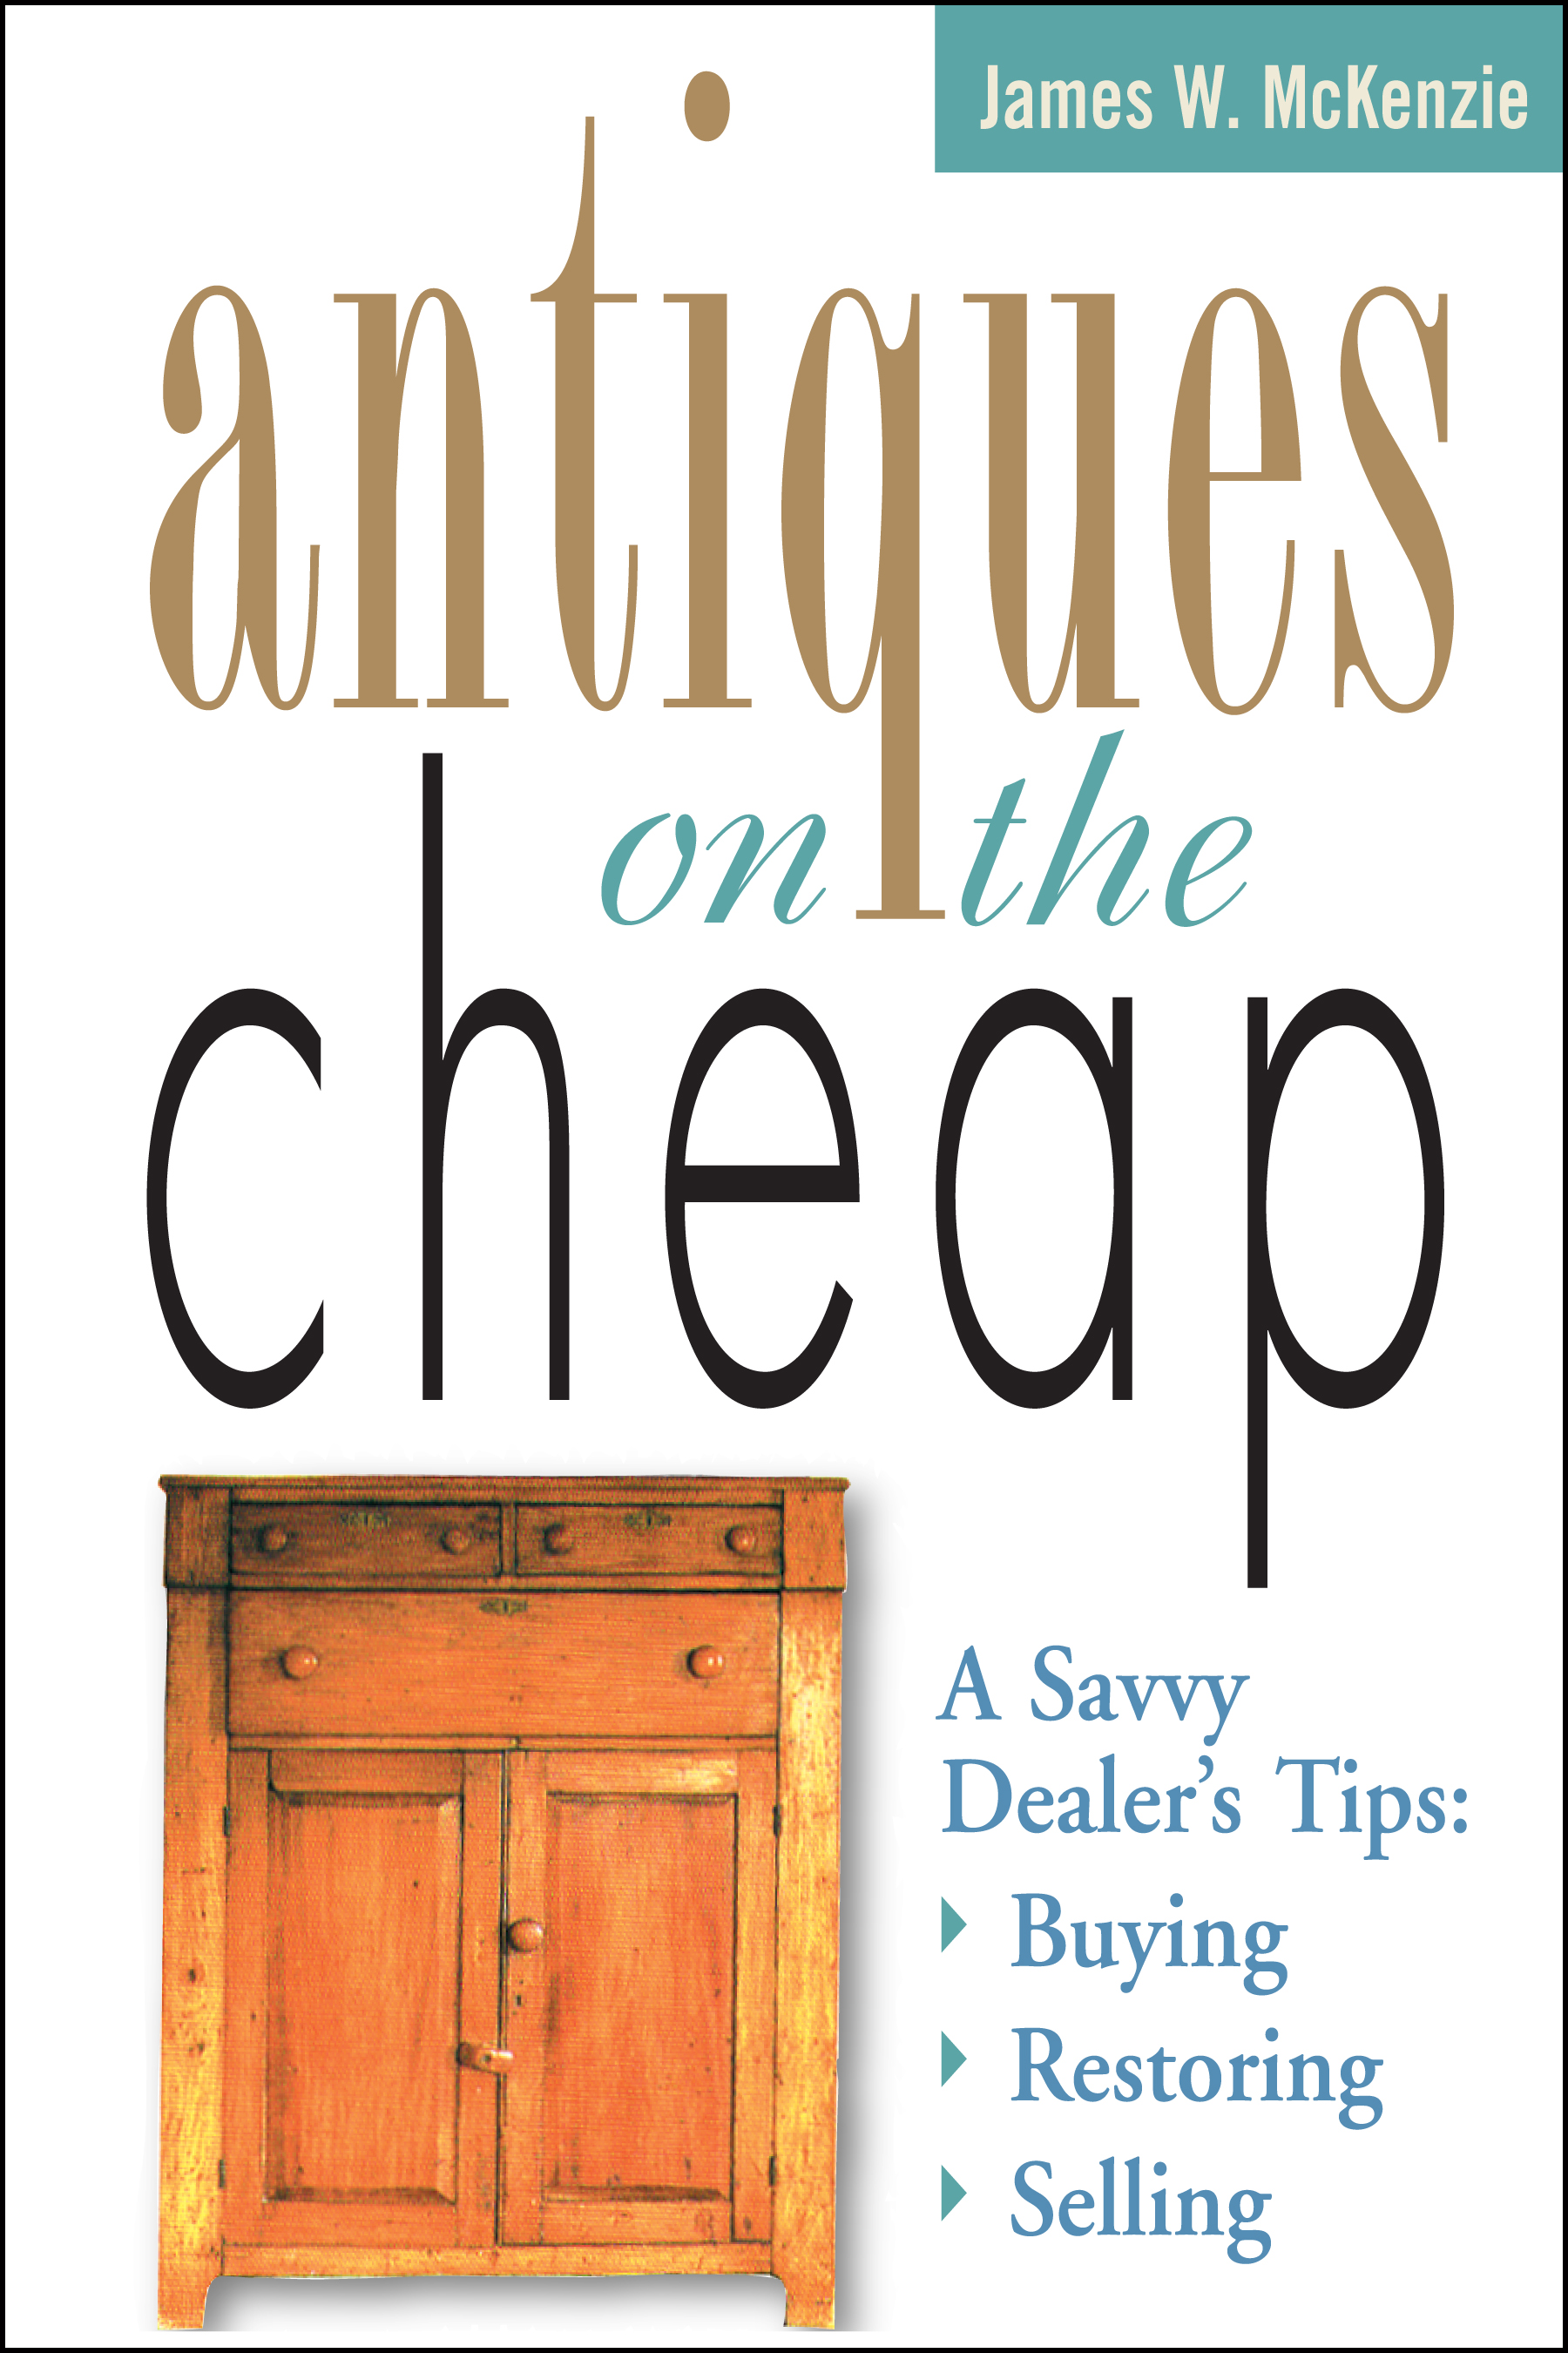 Antiques on the Cheap A Savvy Dealer's Tips: Buying, Restoring, Selling - James W. McKenzie